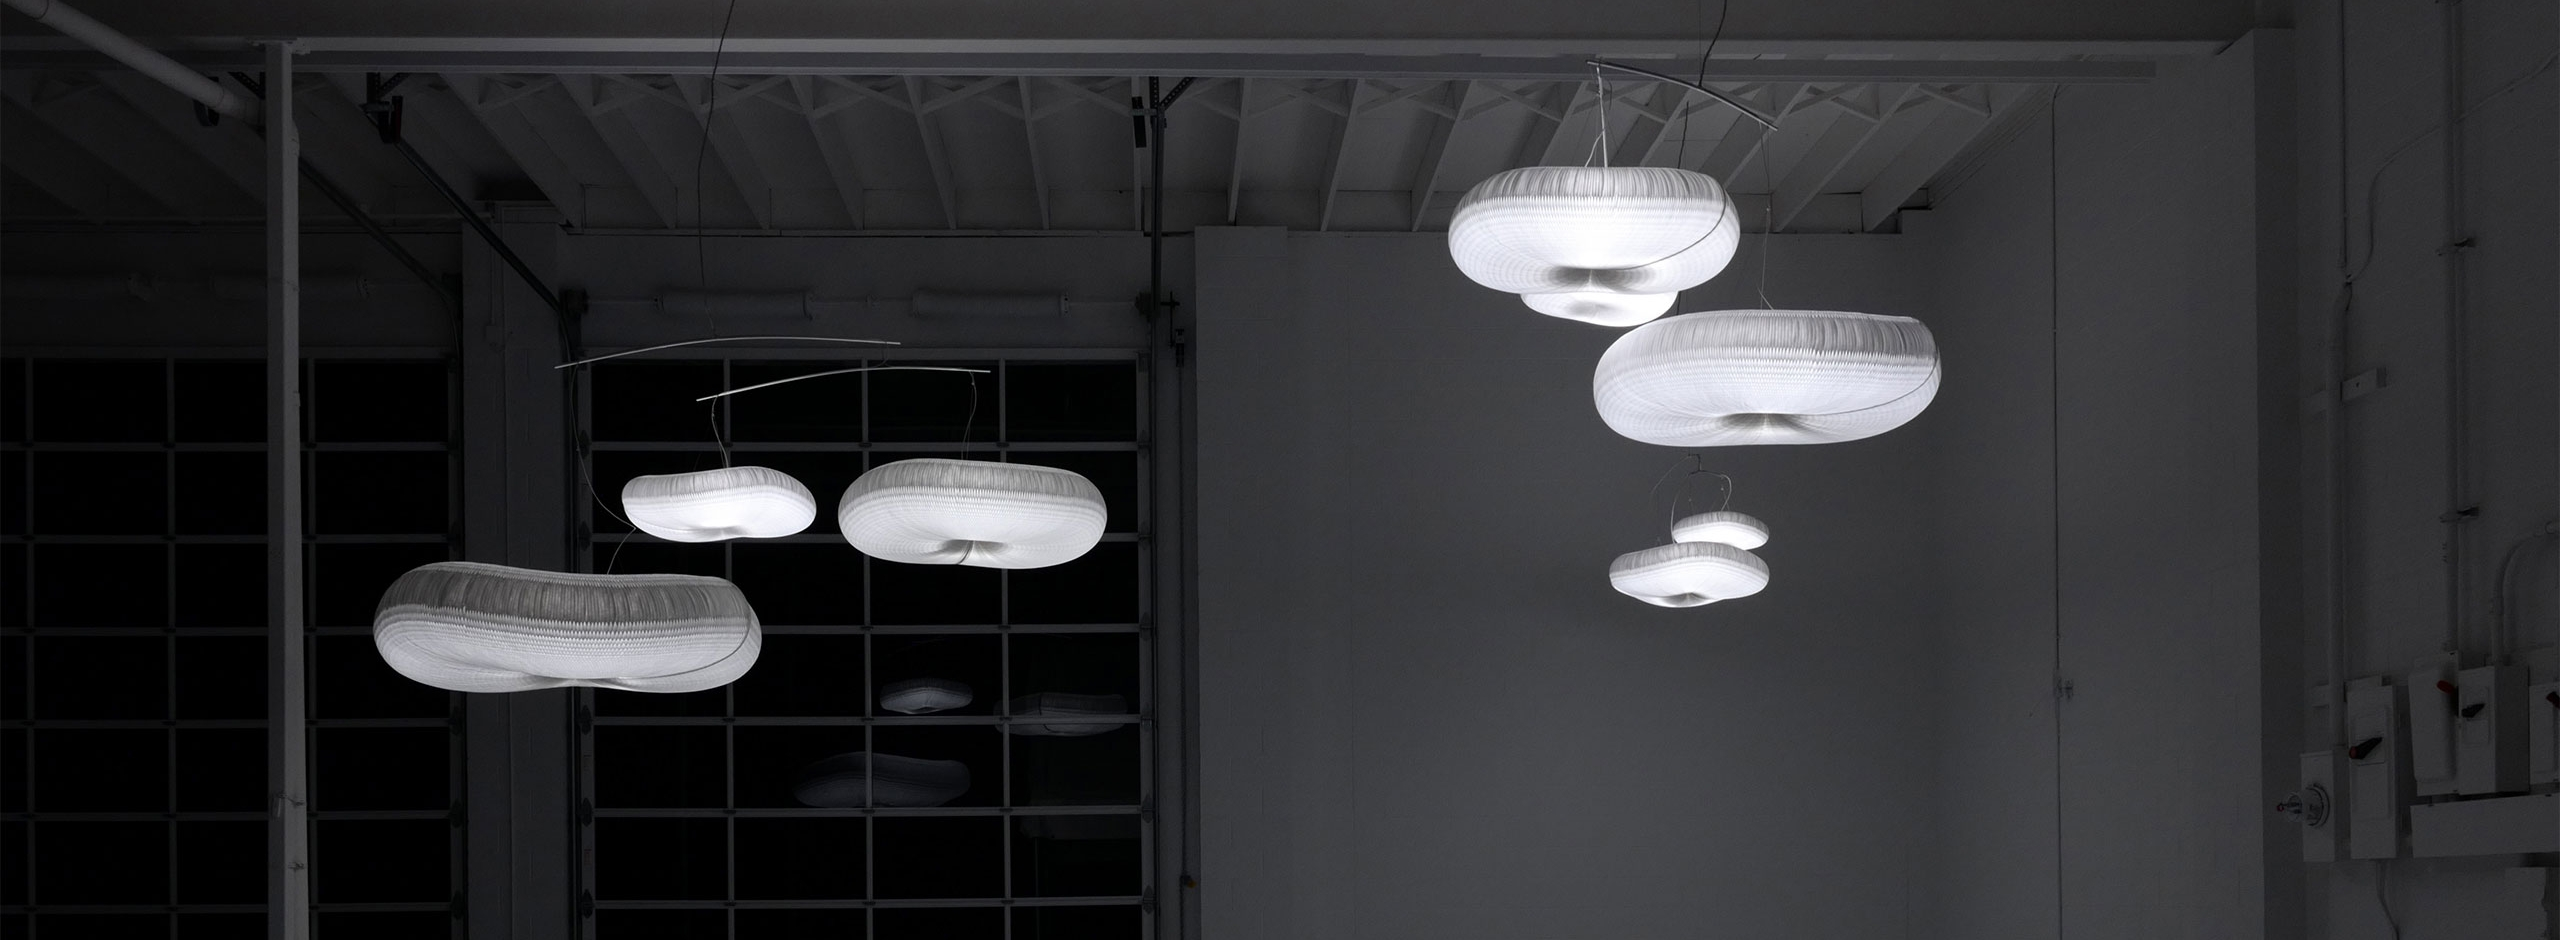 cloud lamp paper light called cloud mobile by Stephanie Forsythe and Todd MacAllen.